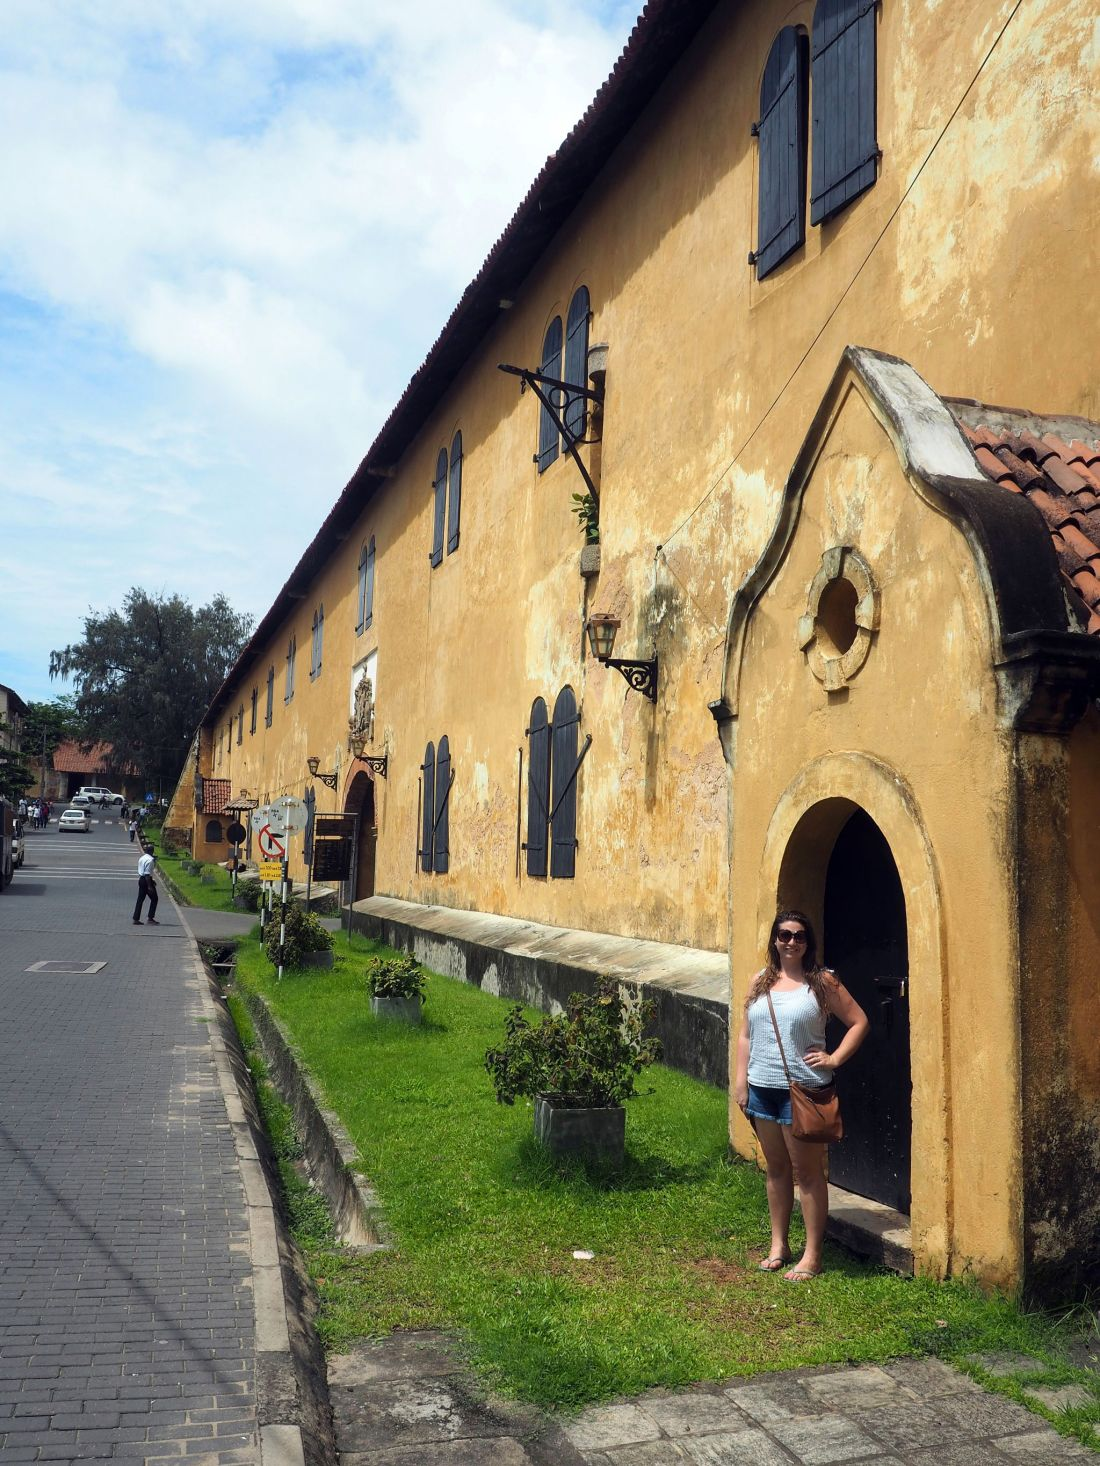 Dutch Spice Warehouses Galle